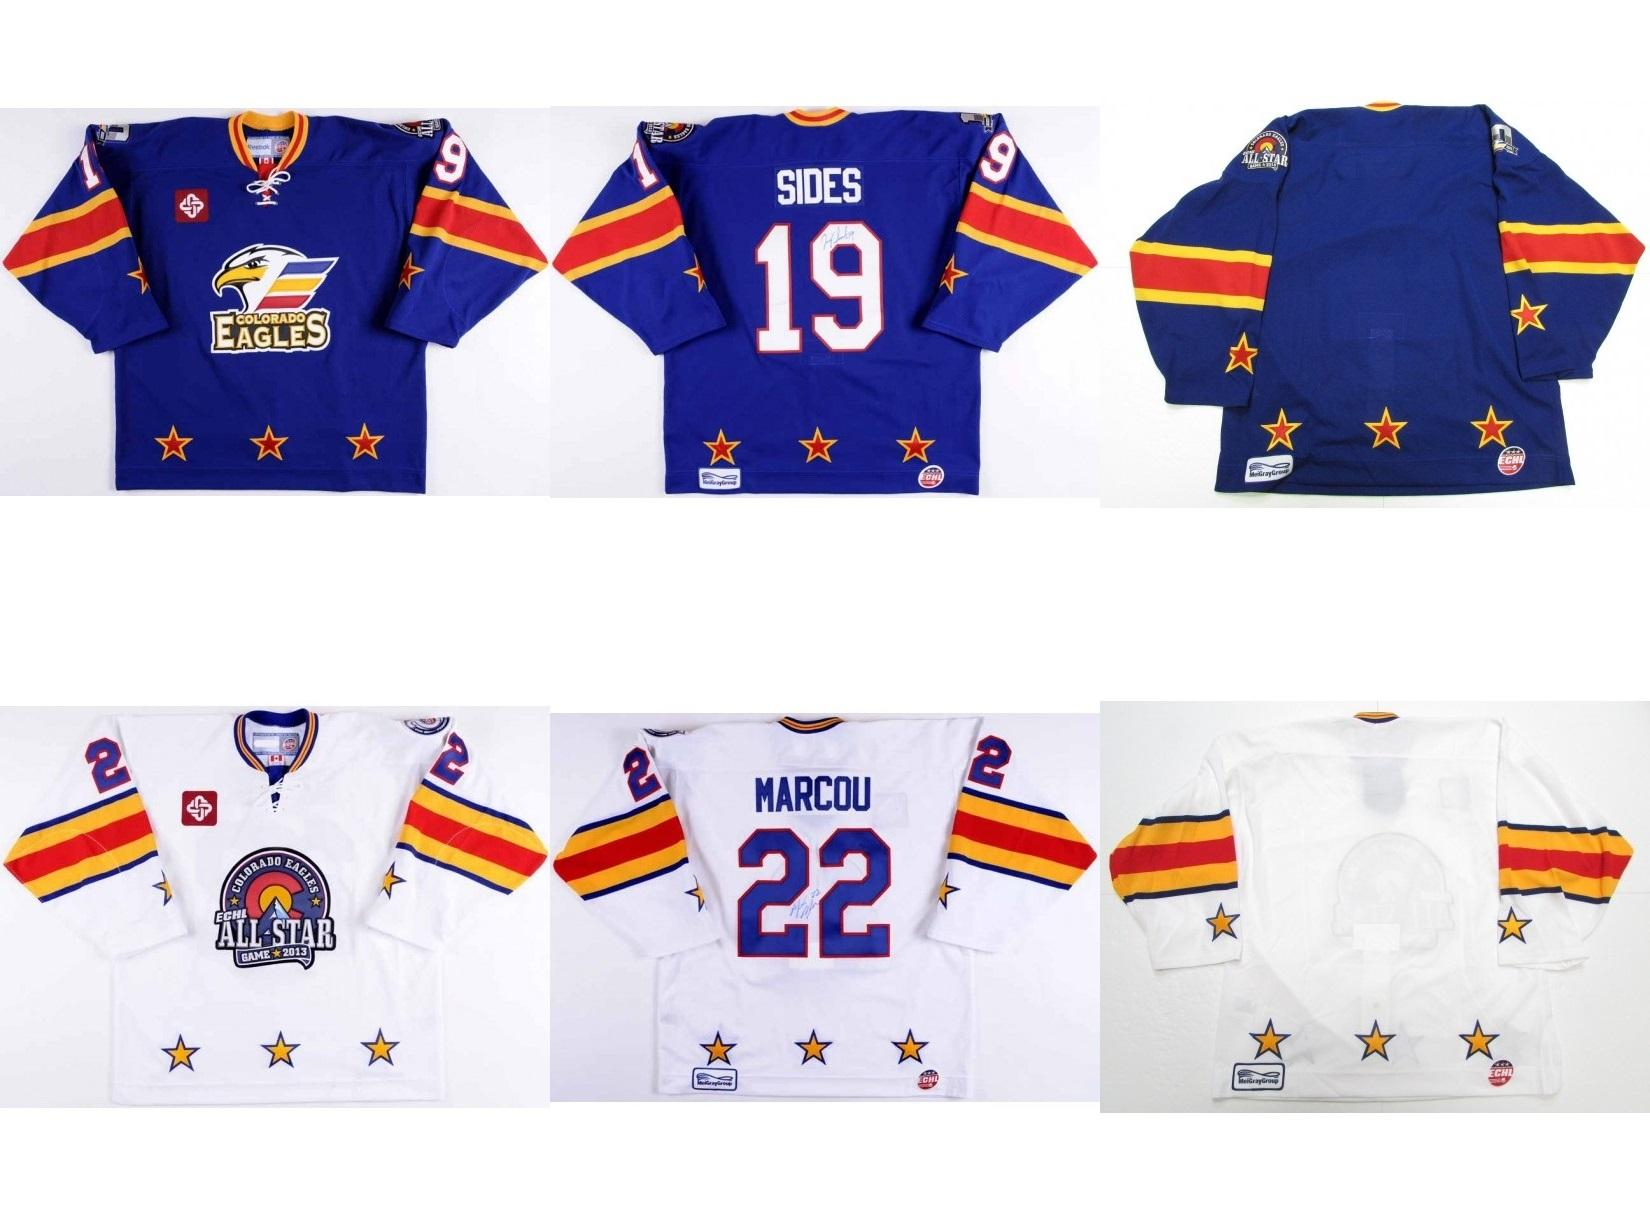 Mens Womens Kids Customize ECHL Colorado Eagles 19 Joey Sides 22 Marcou All  Star 100% Embroidery Cheap Hockey Jerseys Goalit Cut UK 2019 From Since a9482744c